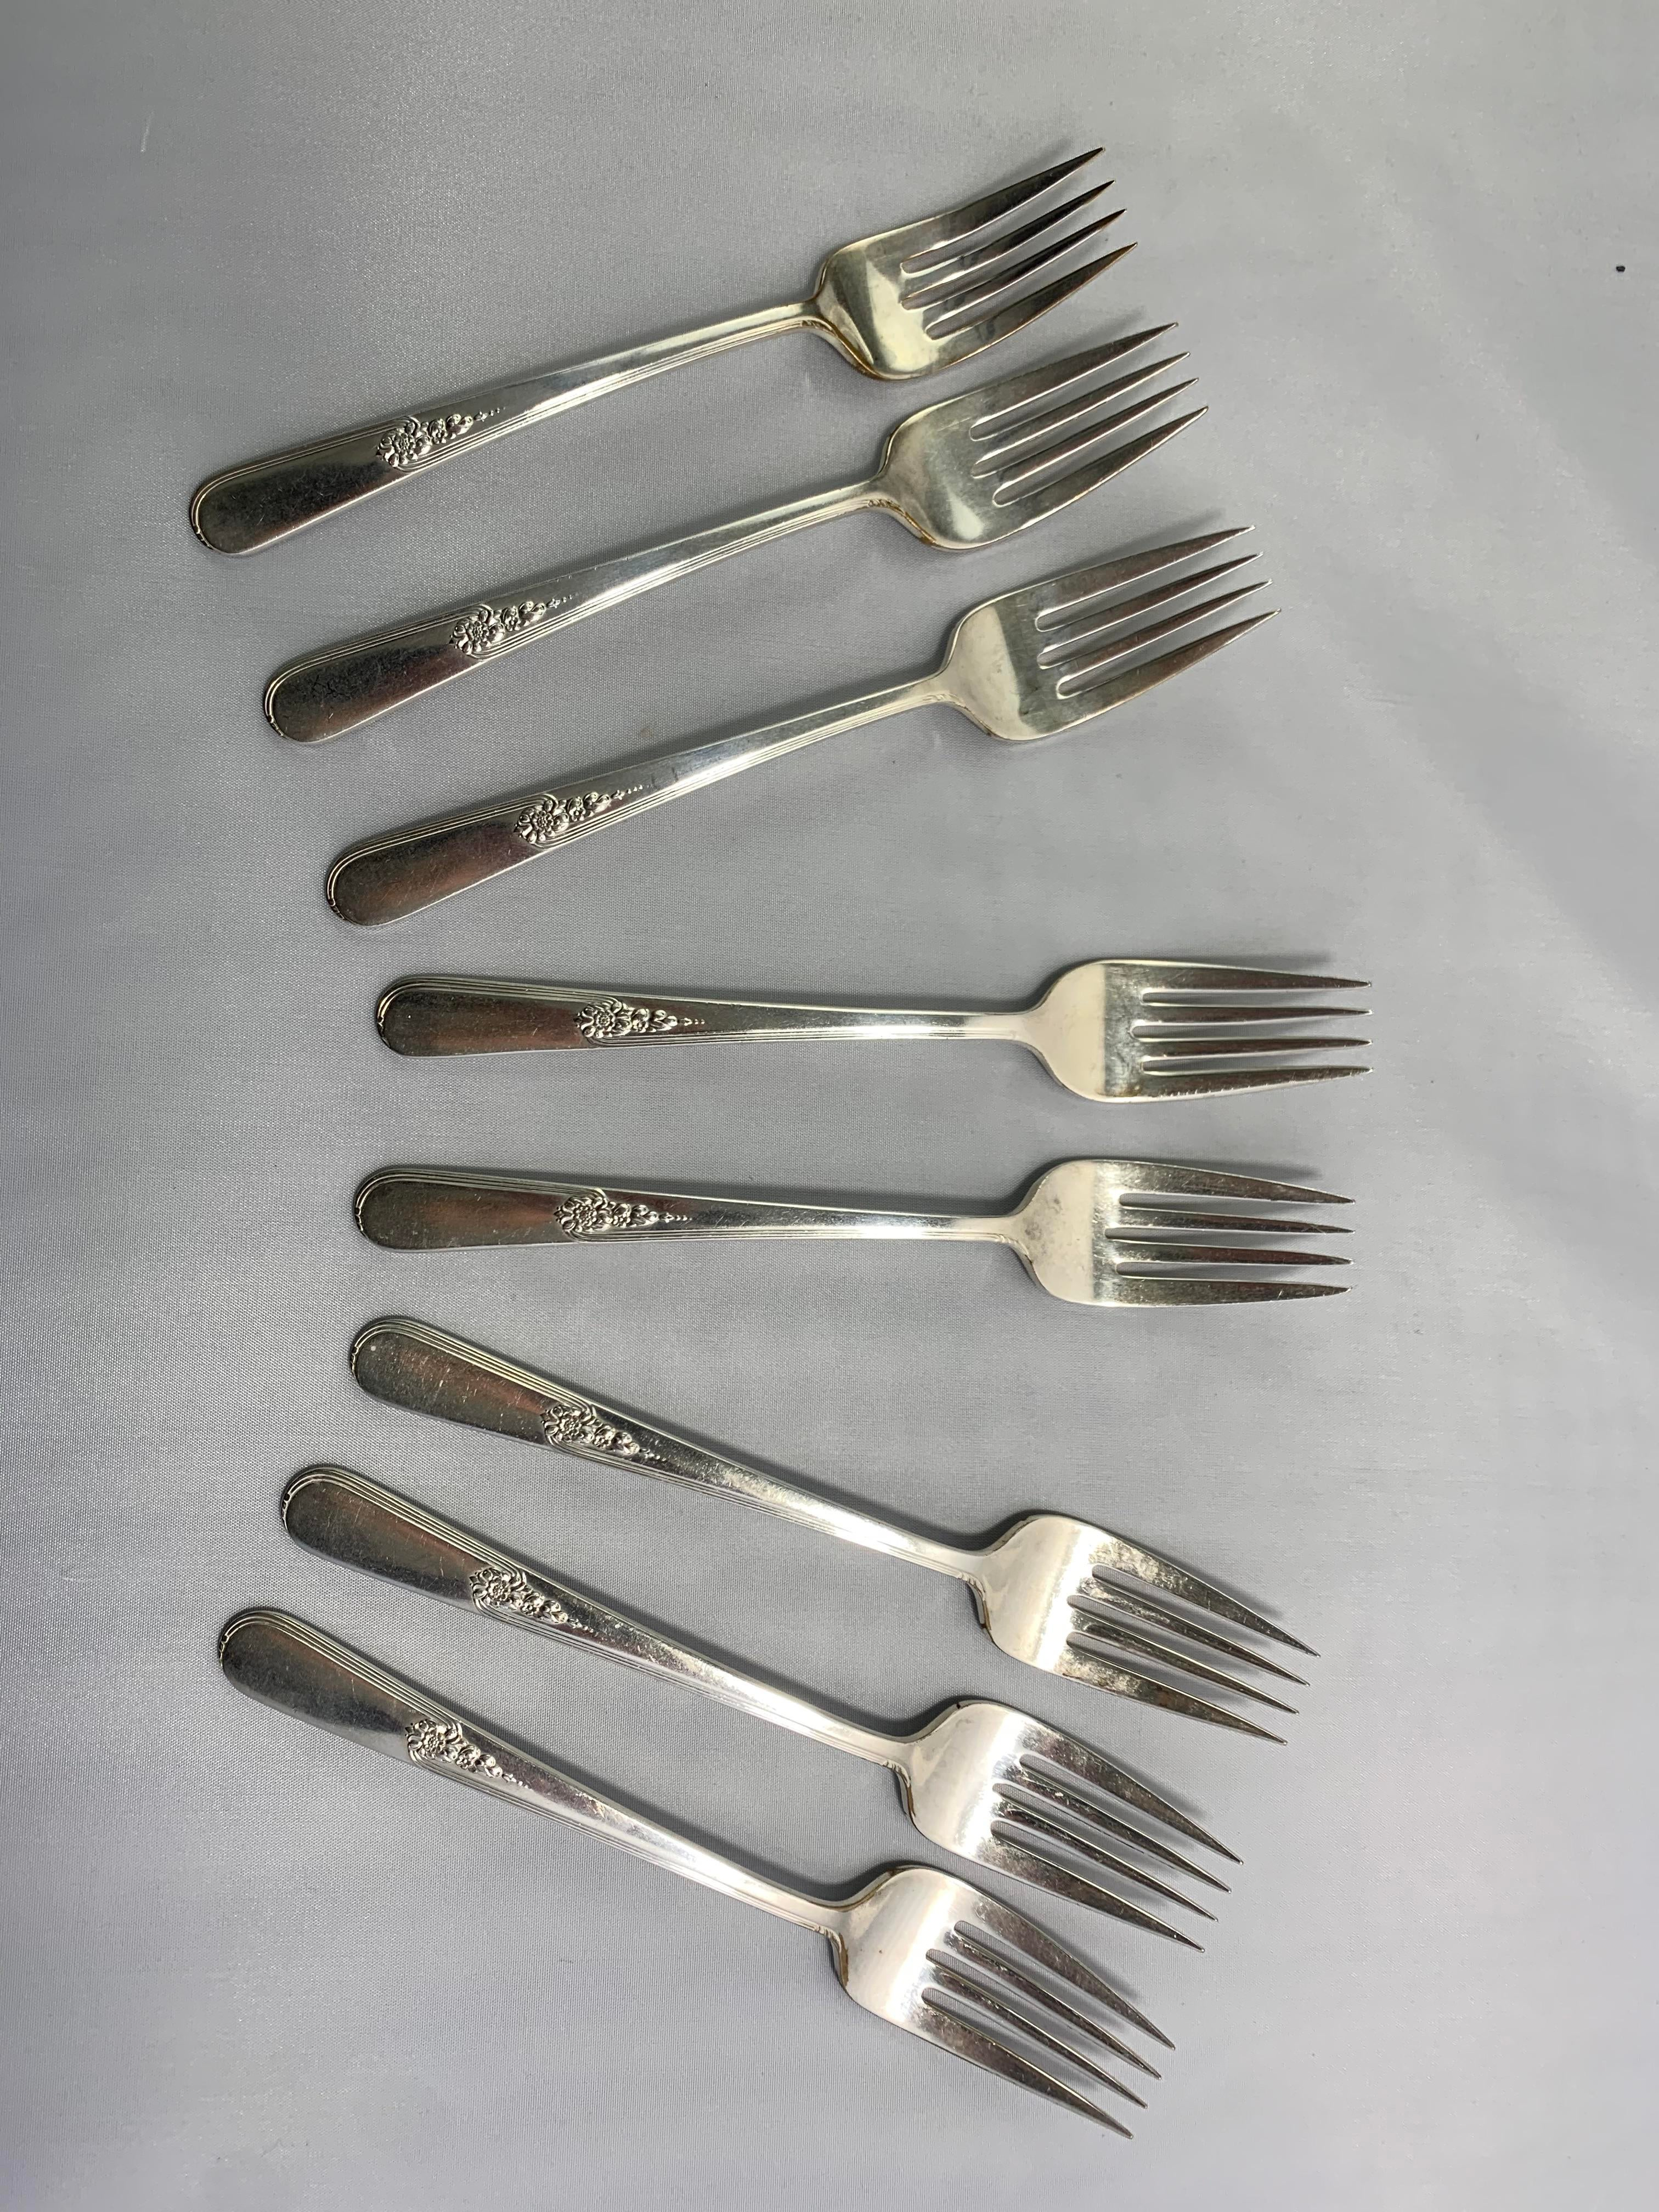 2 Butter Spreaders Vintage silverware Butter Knives Vintage Holmes and Edwards silverplate flatware 1940 YOUTH 1940s silver plate